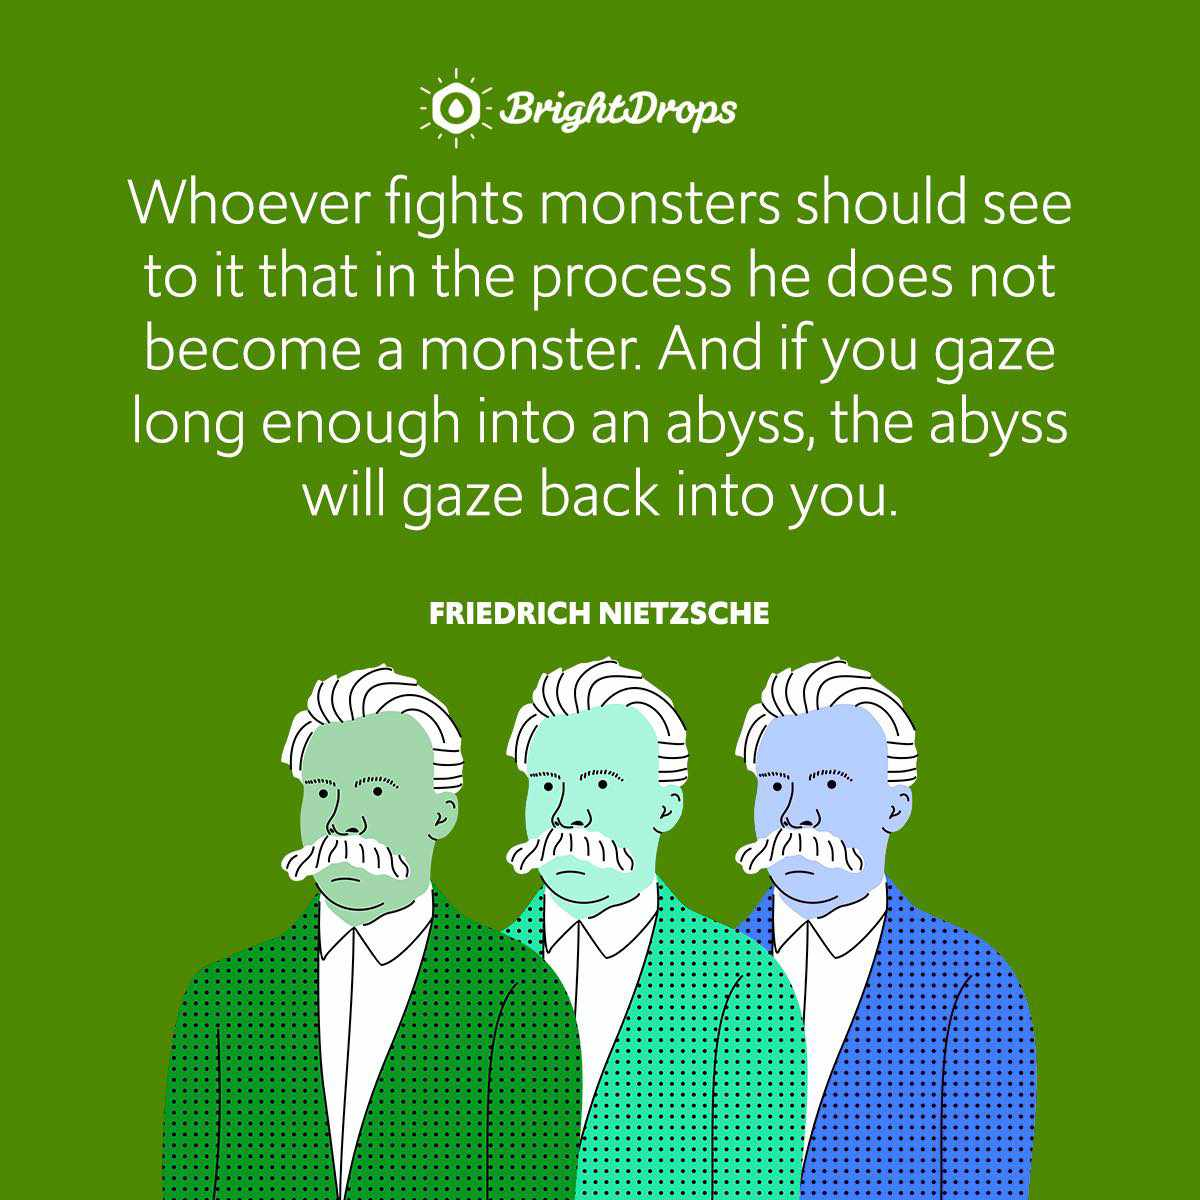 Whoever fights monsters should see to it that in the process he does not become a monster. And if you gaze long enough into an abyss, the abyss will gaze back into you.